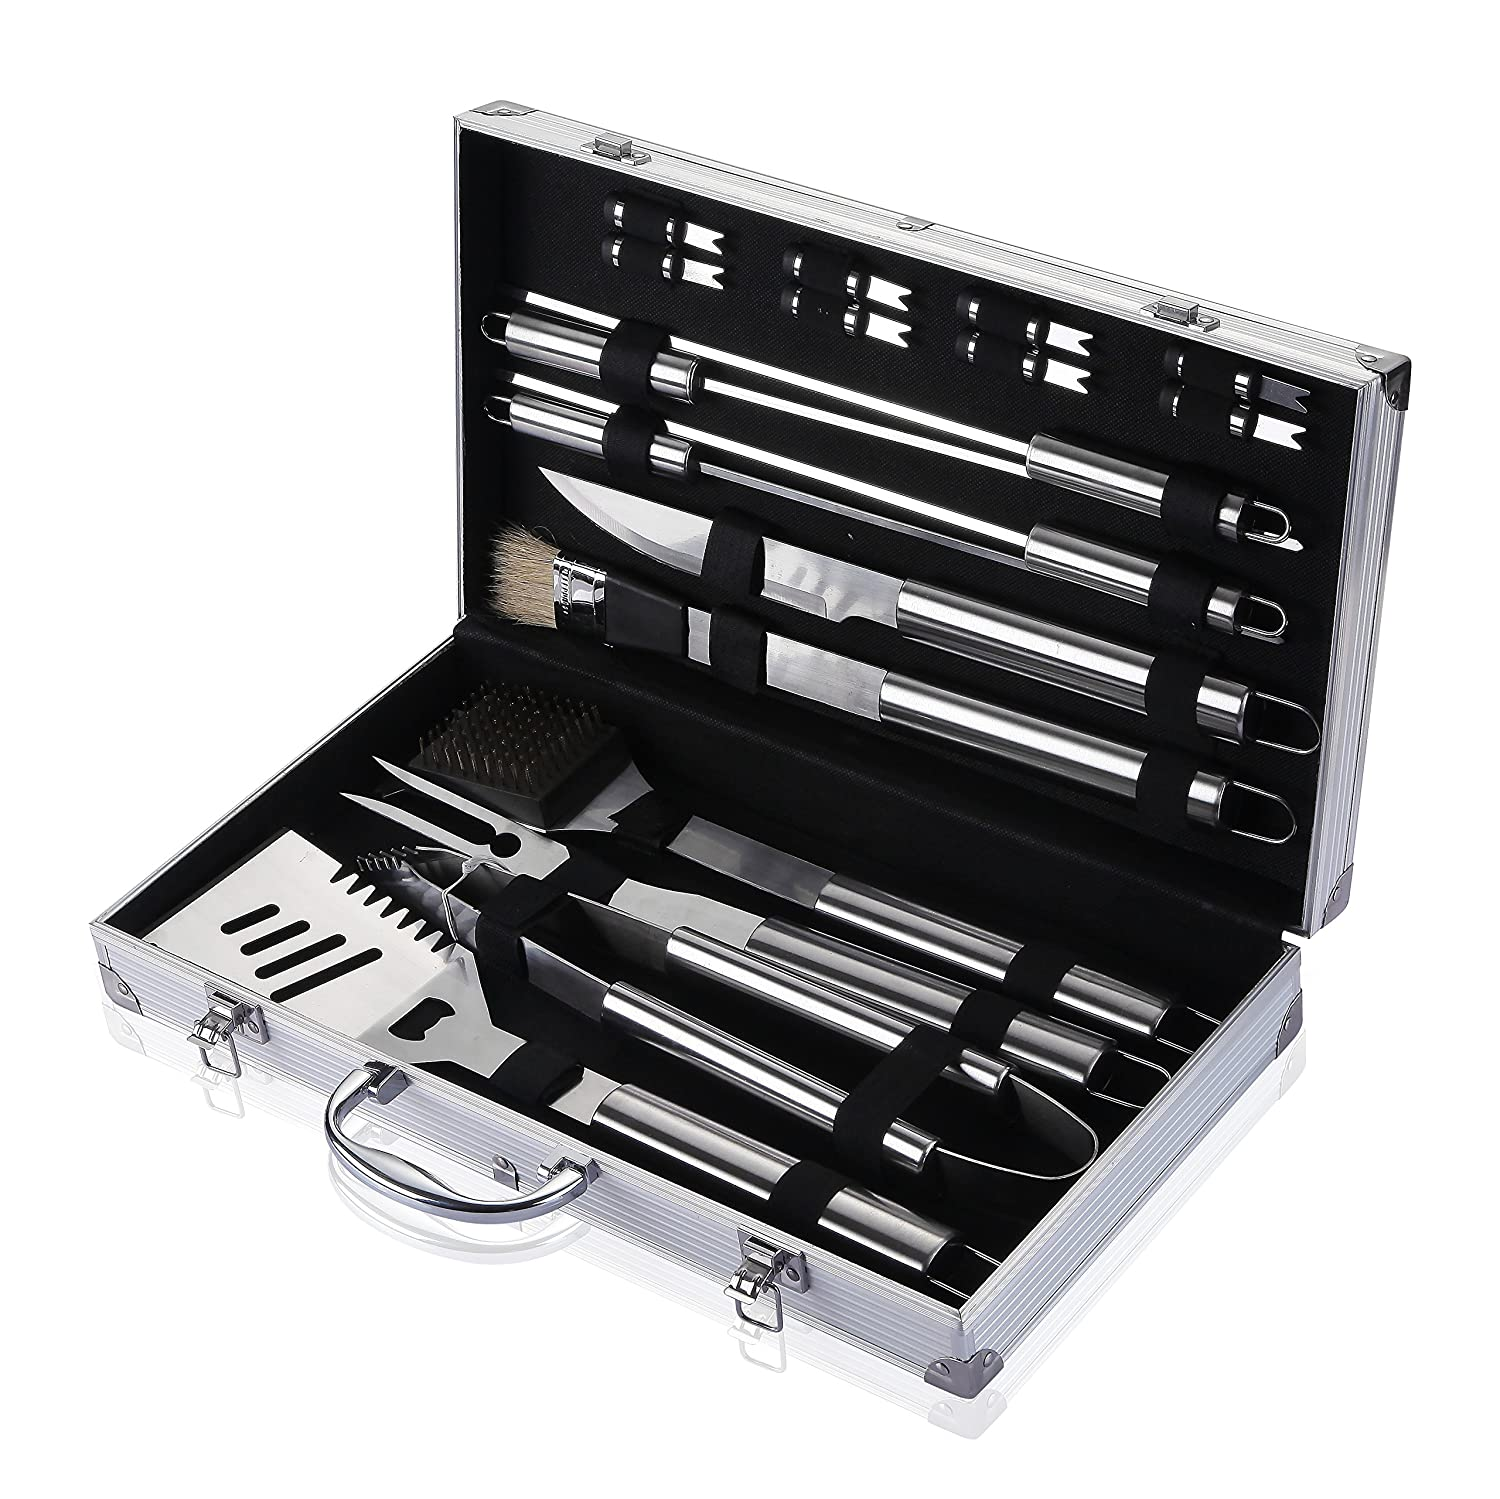 Comfy Mee Barbecue Grill Utensils BBQ Grill Tools Set-18 Piece Stainless Steel BBQ Accessories in Aluminum Storage Case